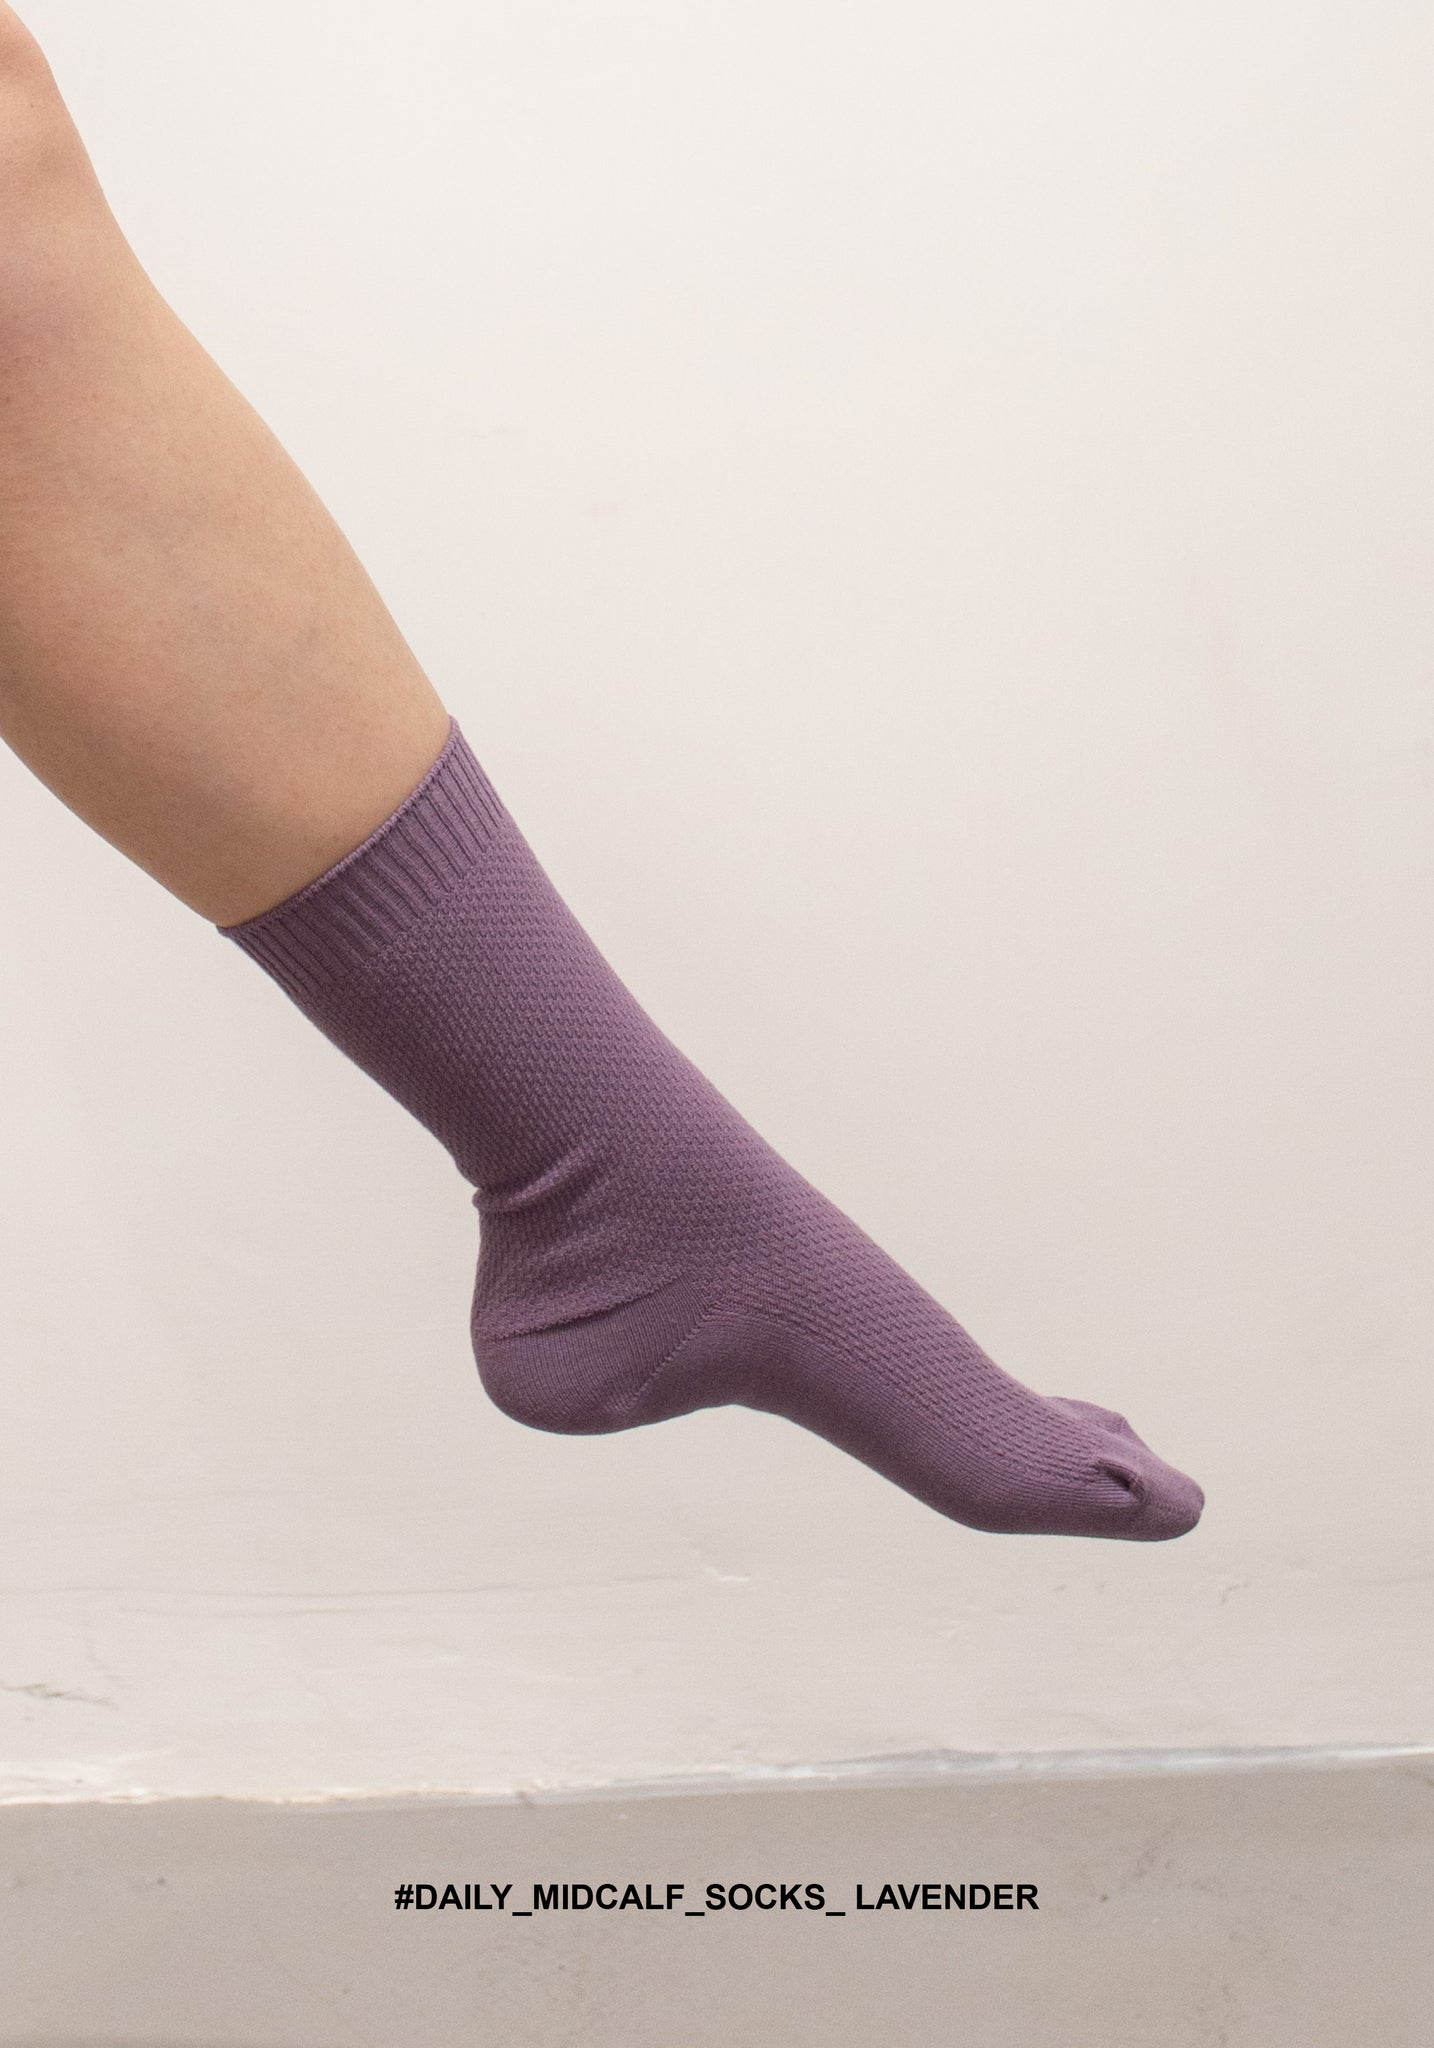 Daily Midcalf Socks Lavender - whoami